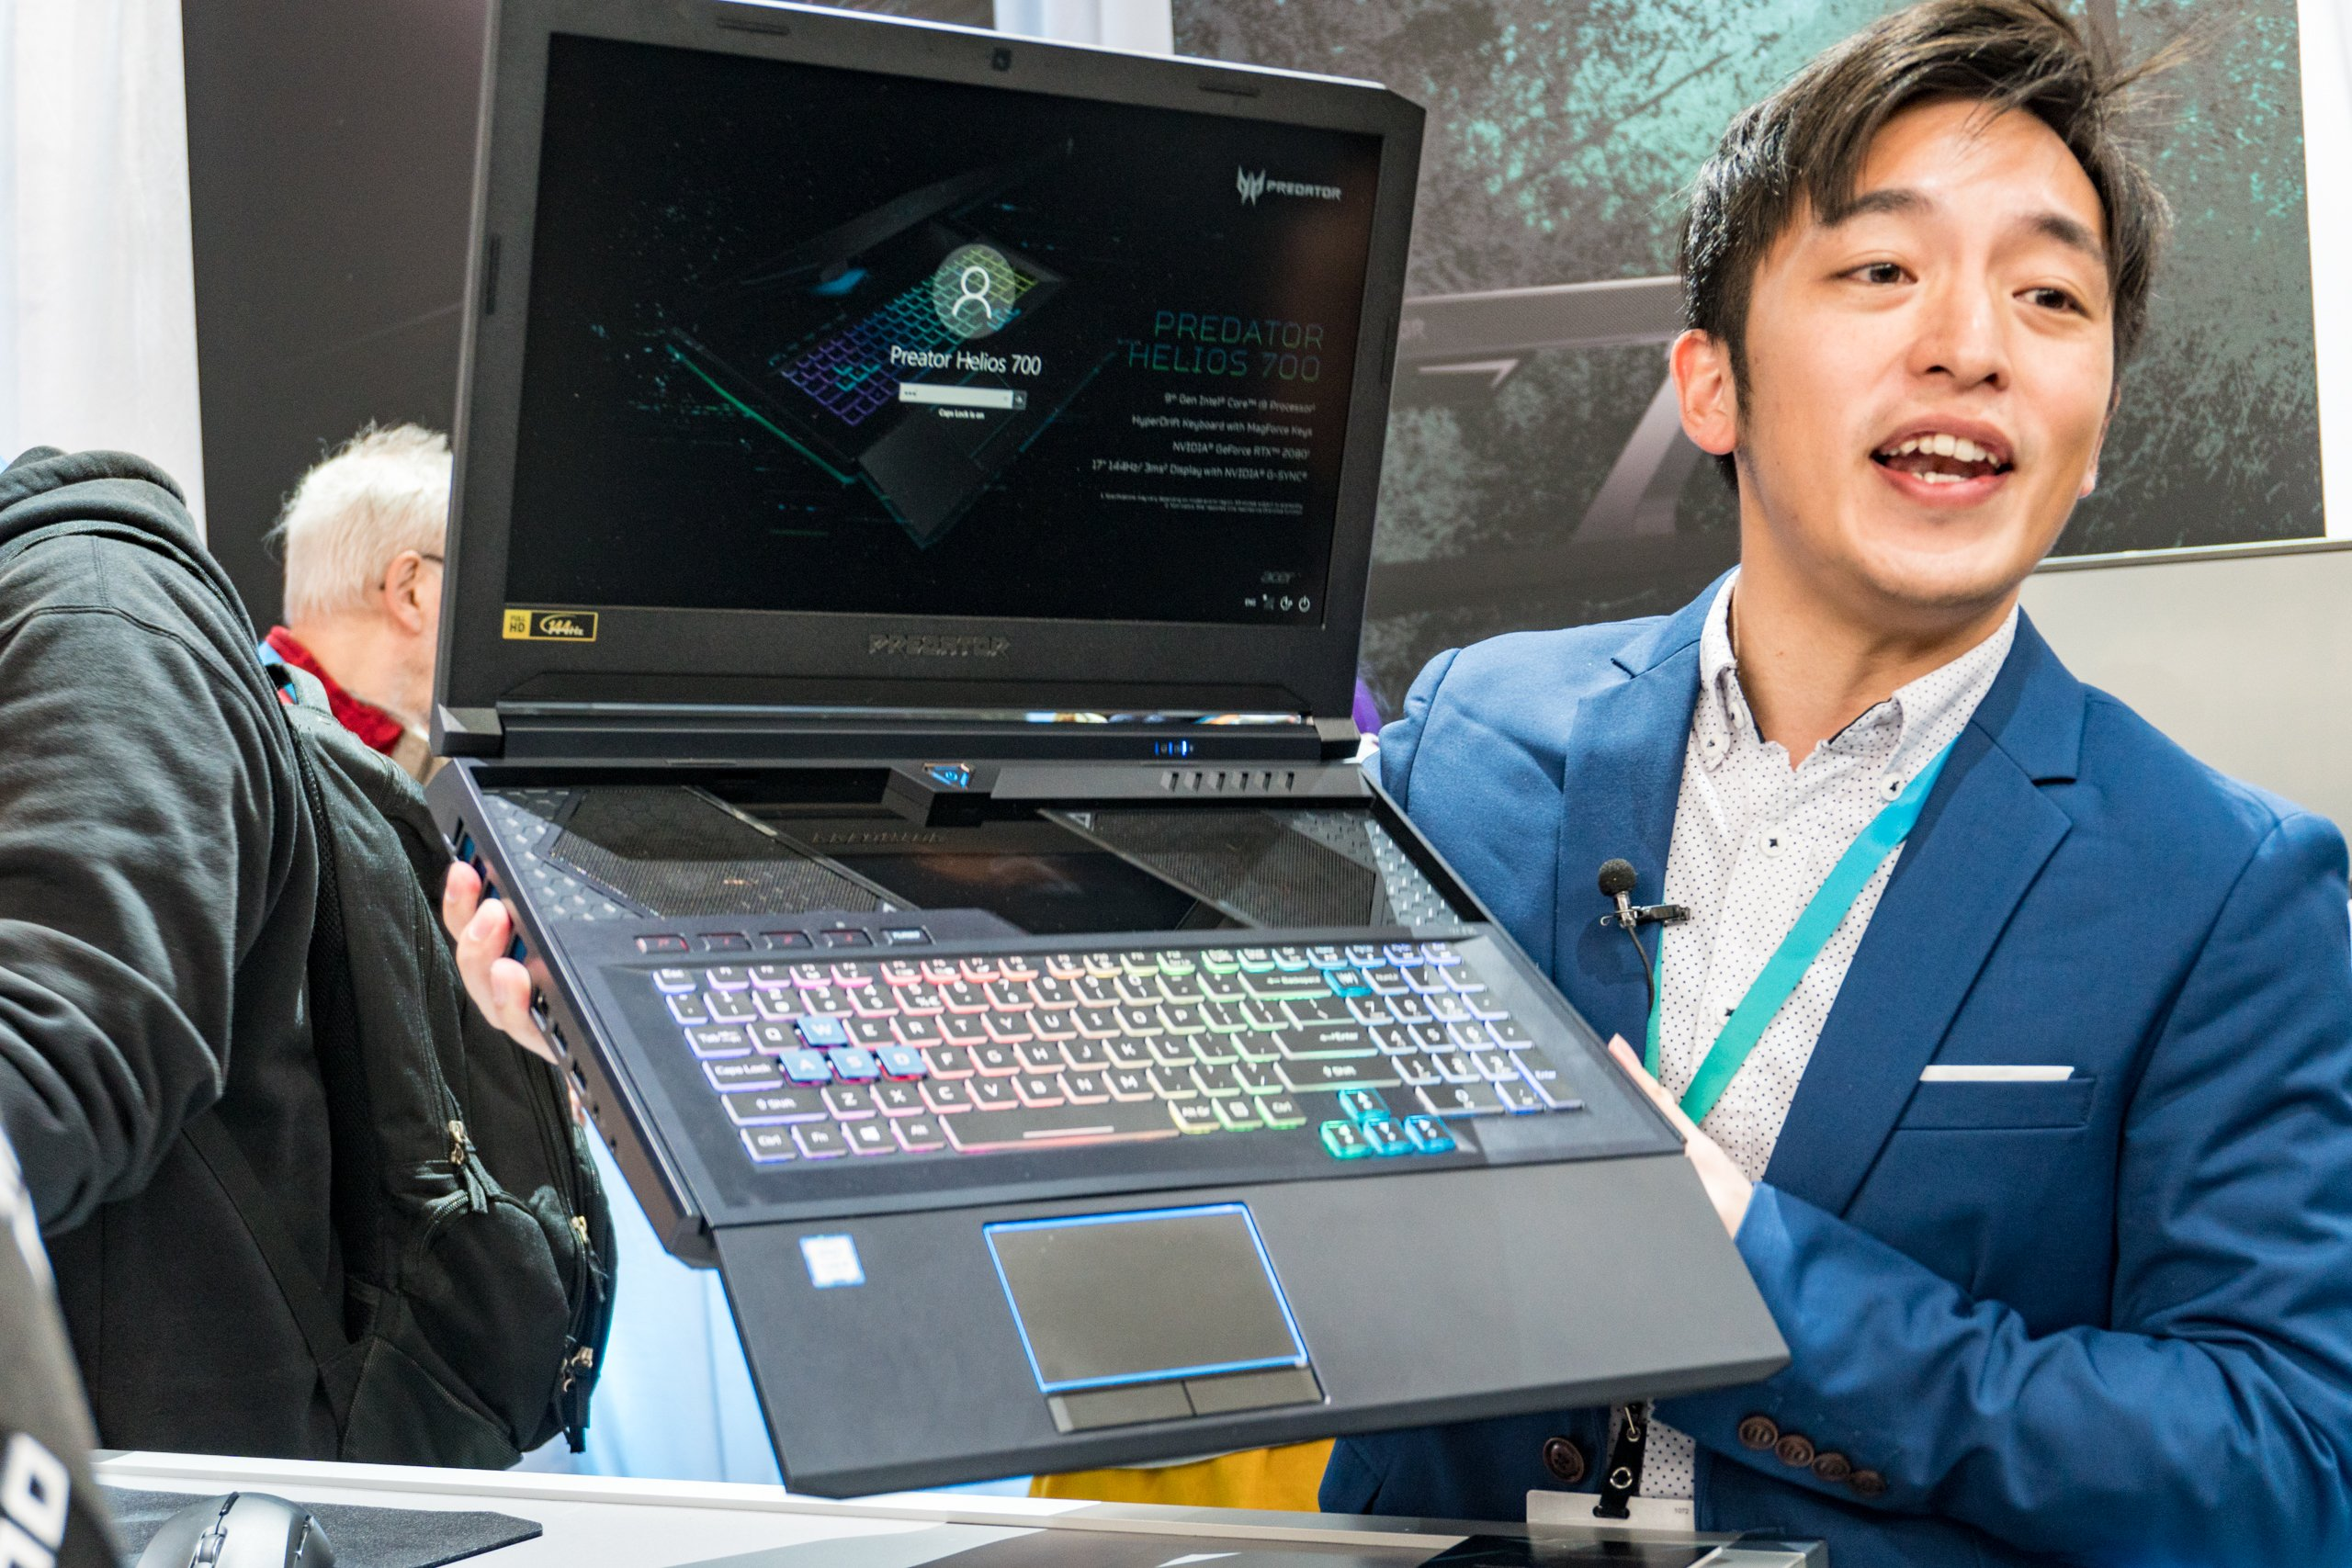 Acer unveils new Helios 700 gaming laptop